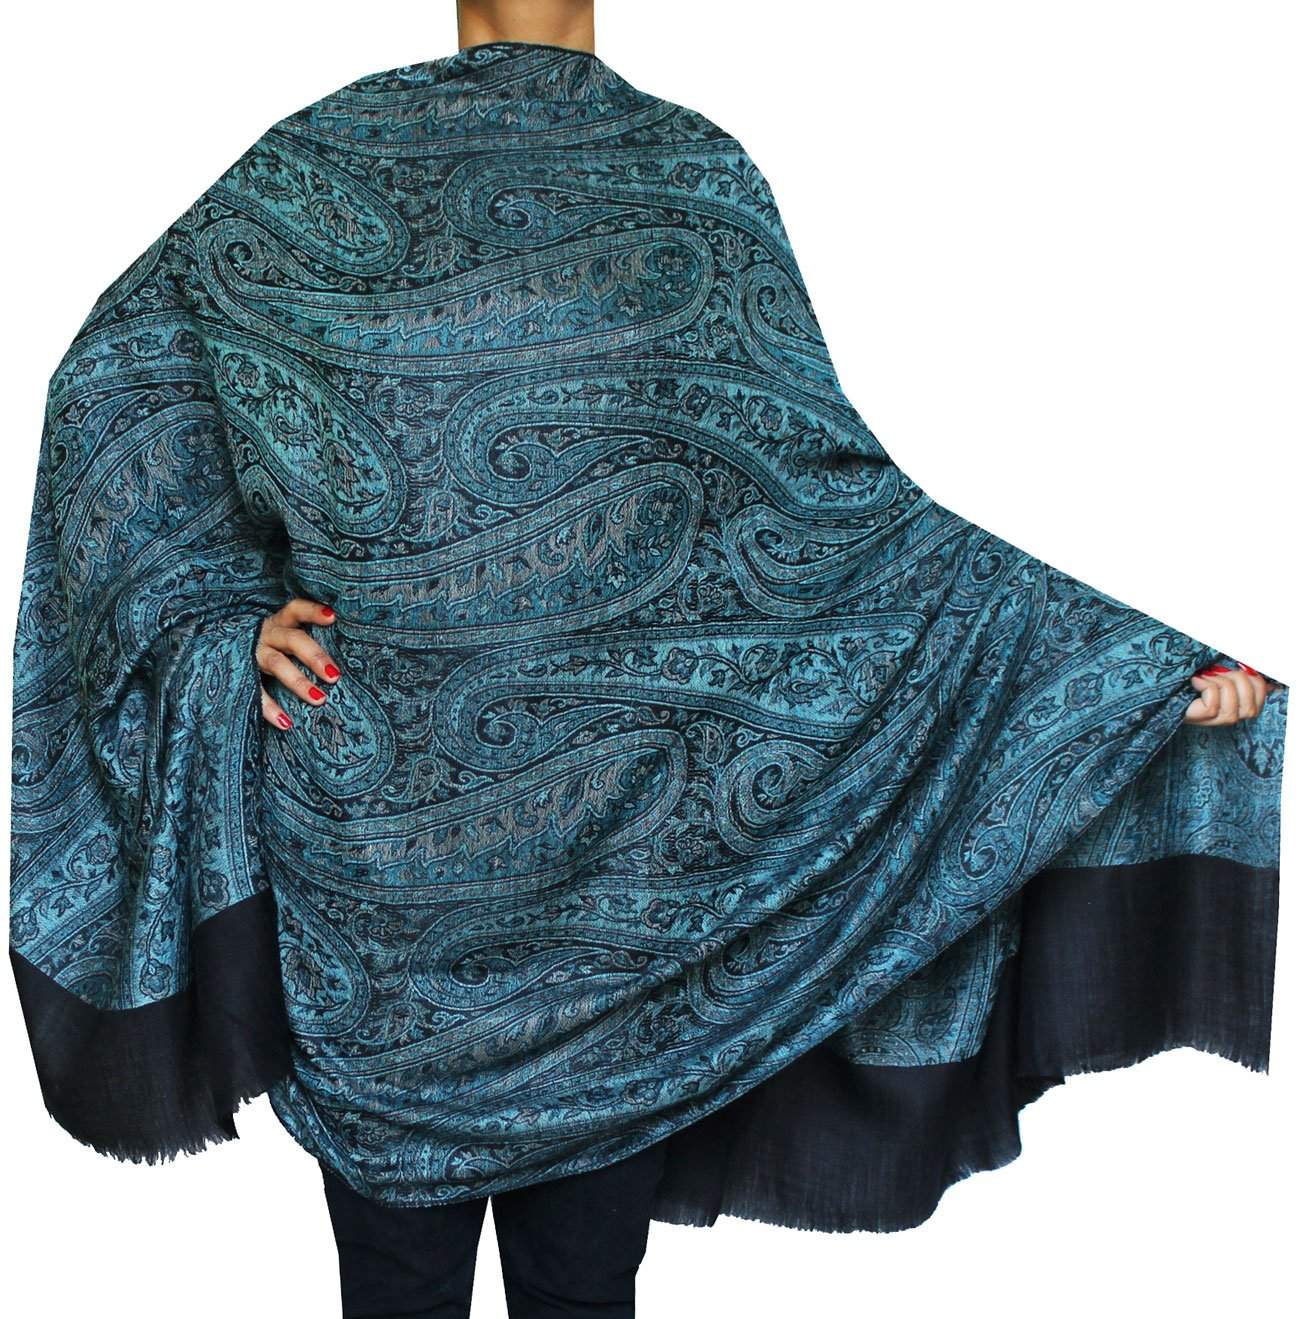 Women's Wool Shawl Paisley Indian Scarves Wraps (82 x 42 inches) Maple Clothing shwl143187a